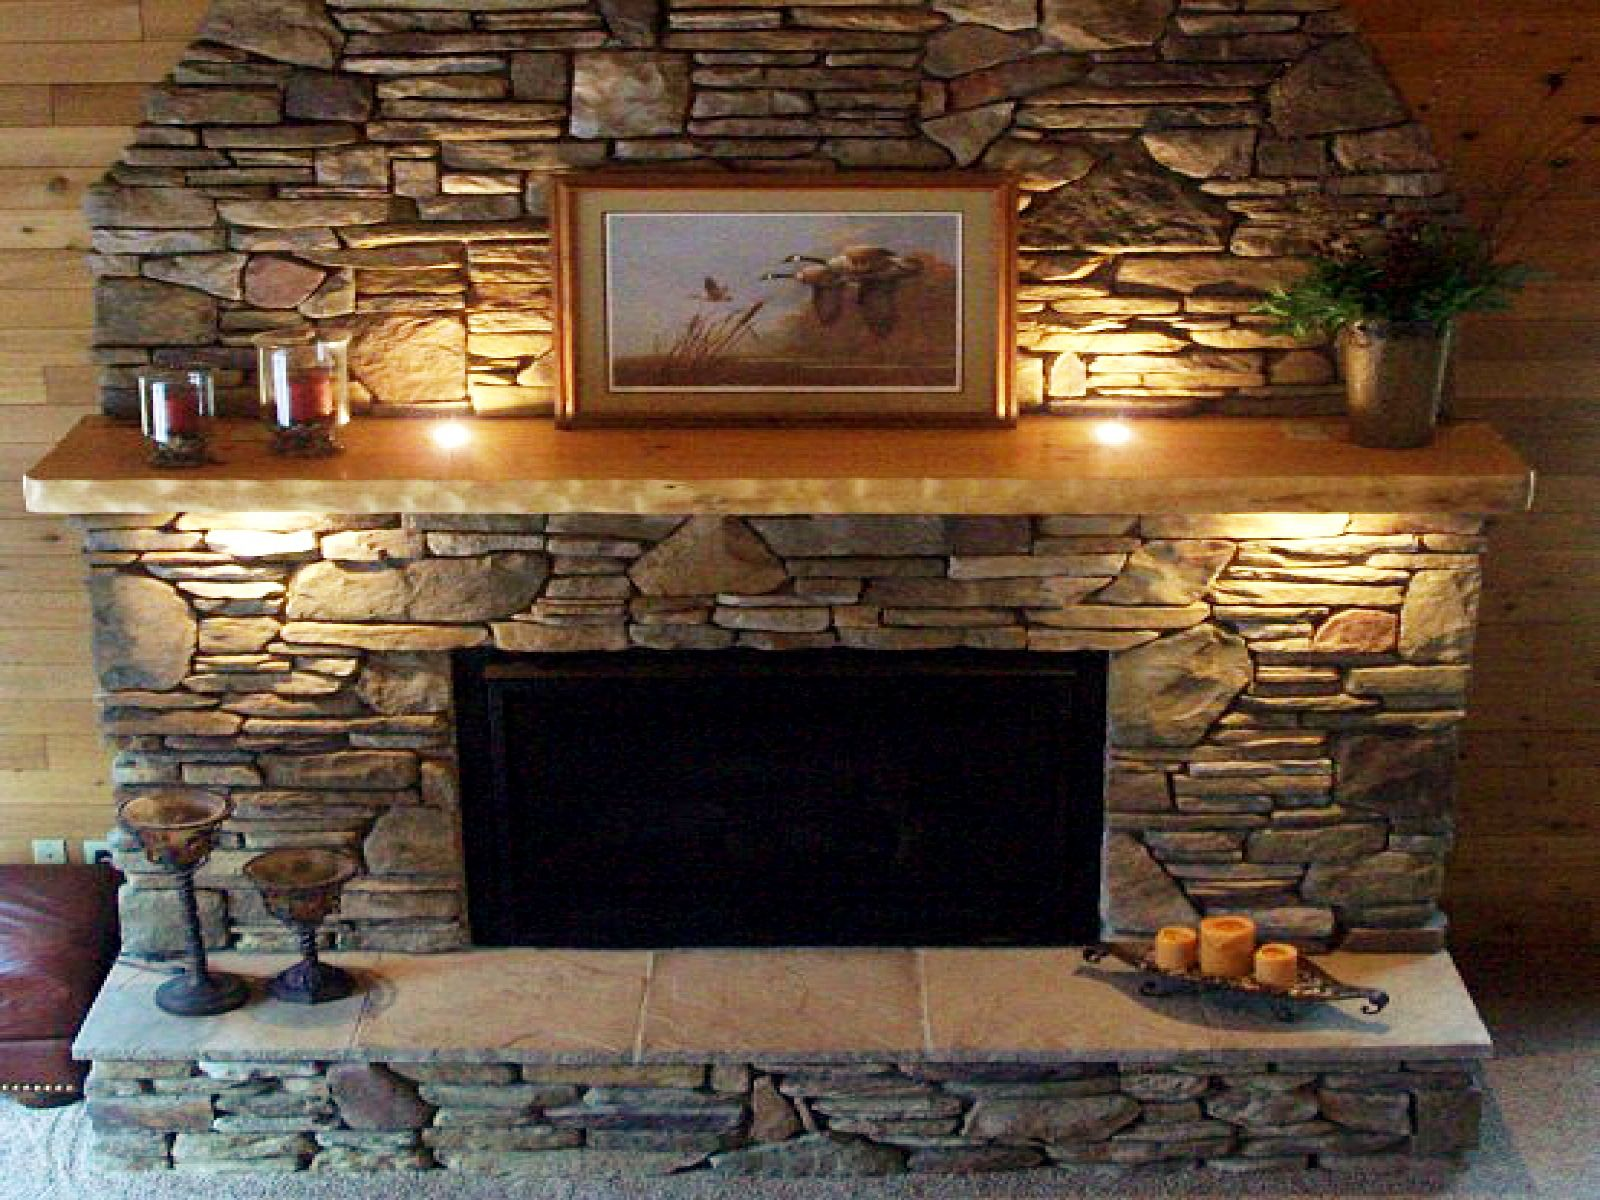 mantle mantel mantels first fireplace rustic joyous cadocb dk fun california log oak wood